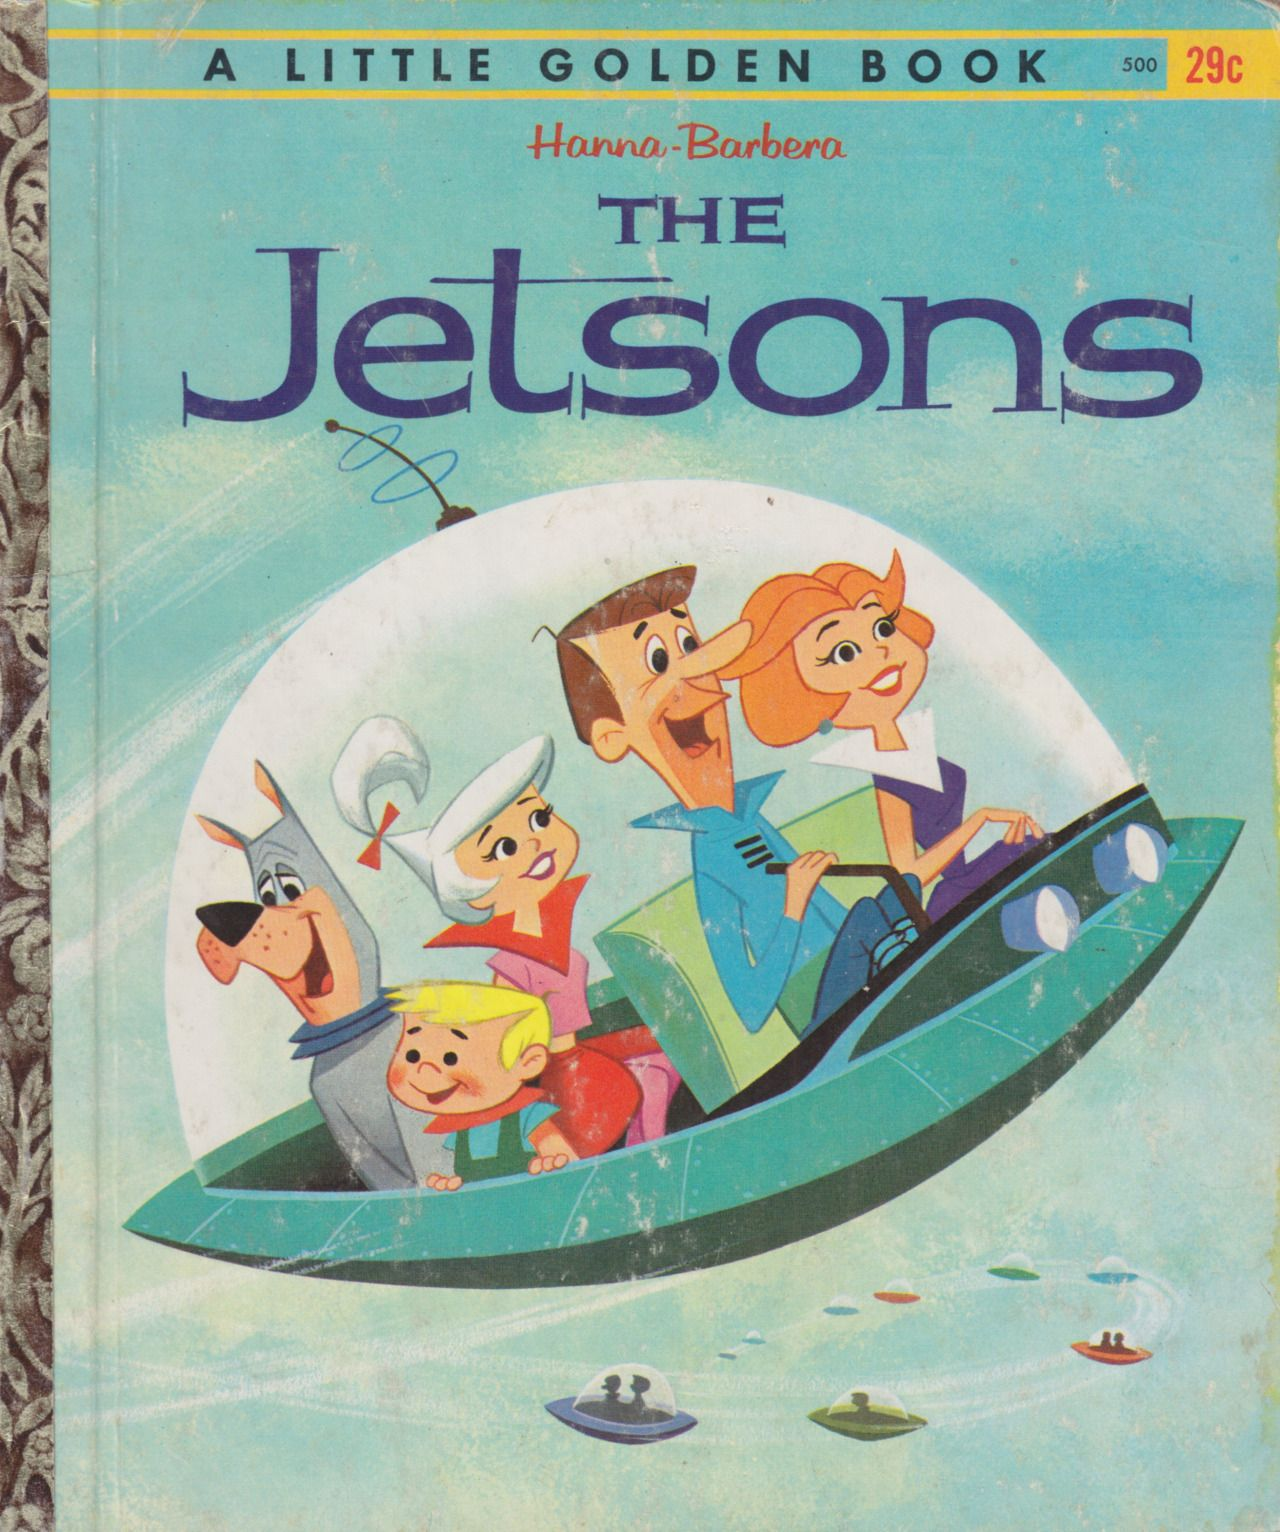 Title: Quick Draw McGrawSeries: Little Golden Books 500 Characters: Elroy Jetson, Jane Jetson, George Jetson, Astro, Judy Jetson Creators: by Carl Memling Illustrated by Al White and Hawley...